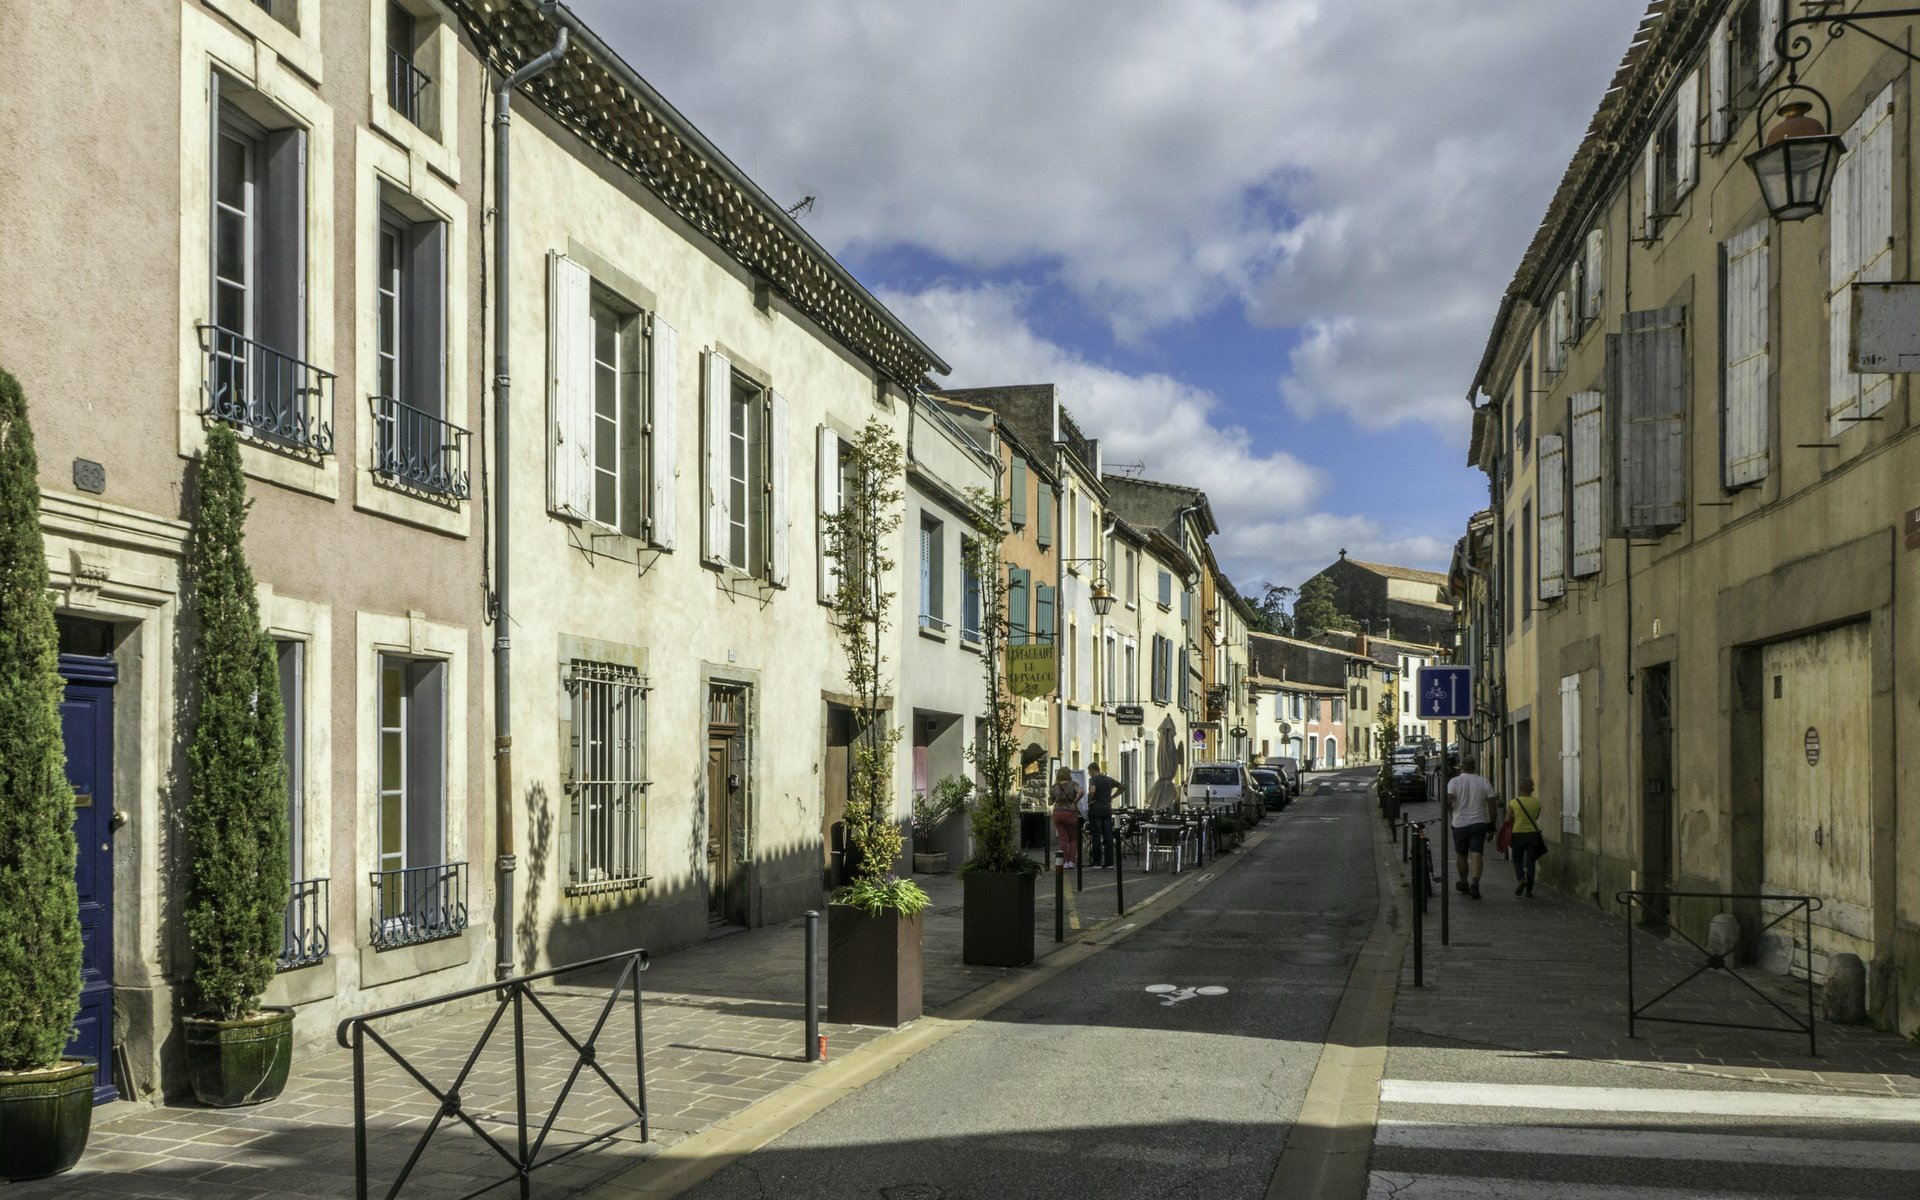 Rue Trivalle in Carcassonne